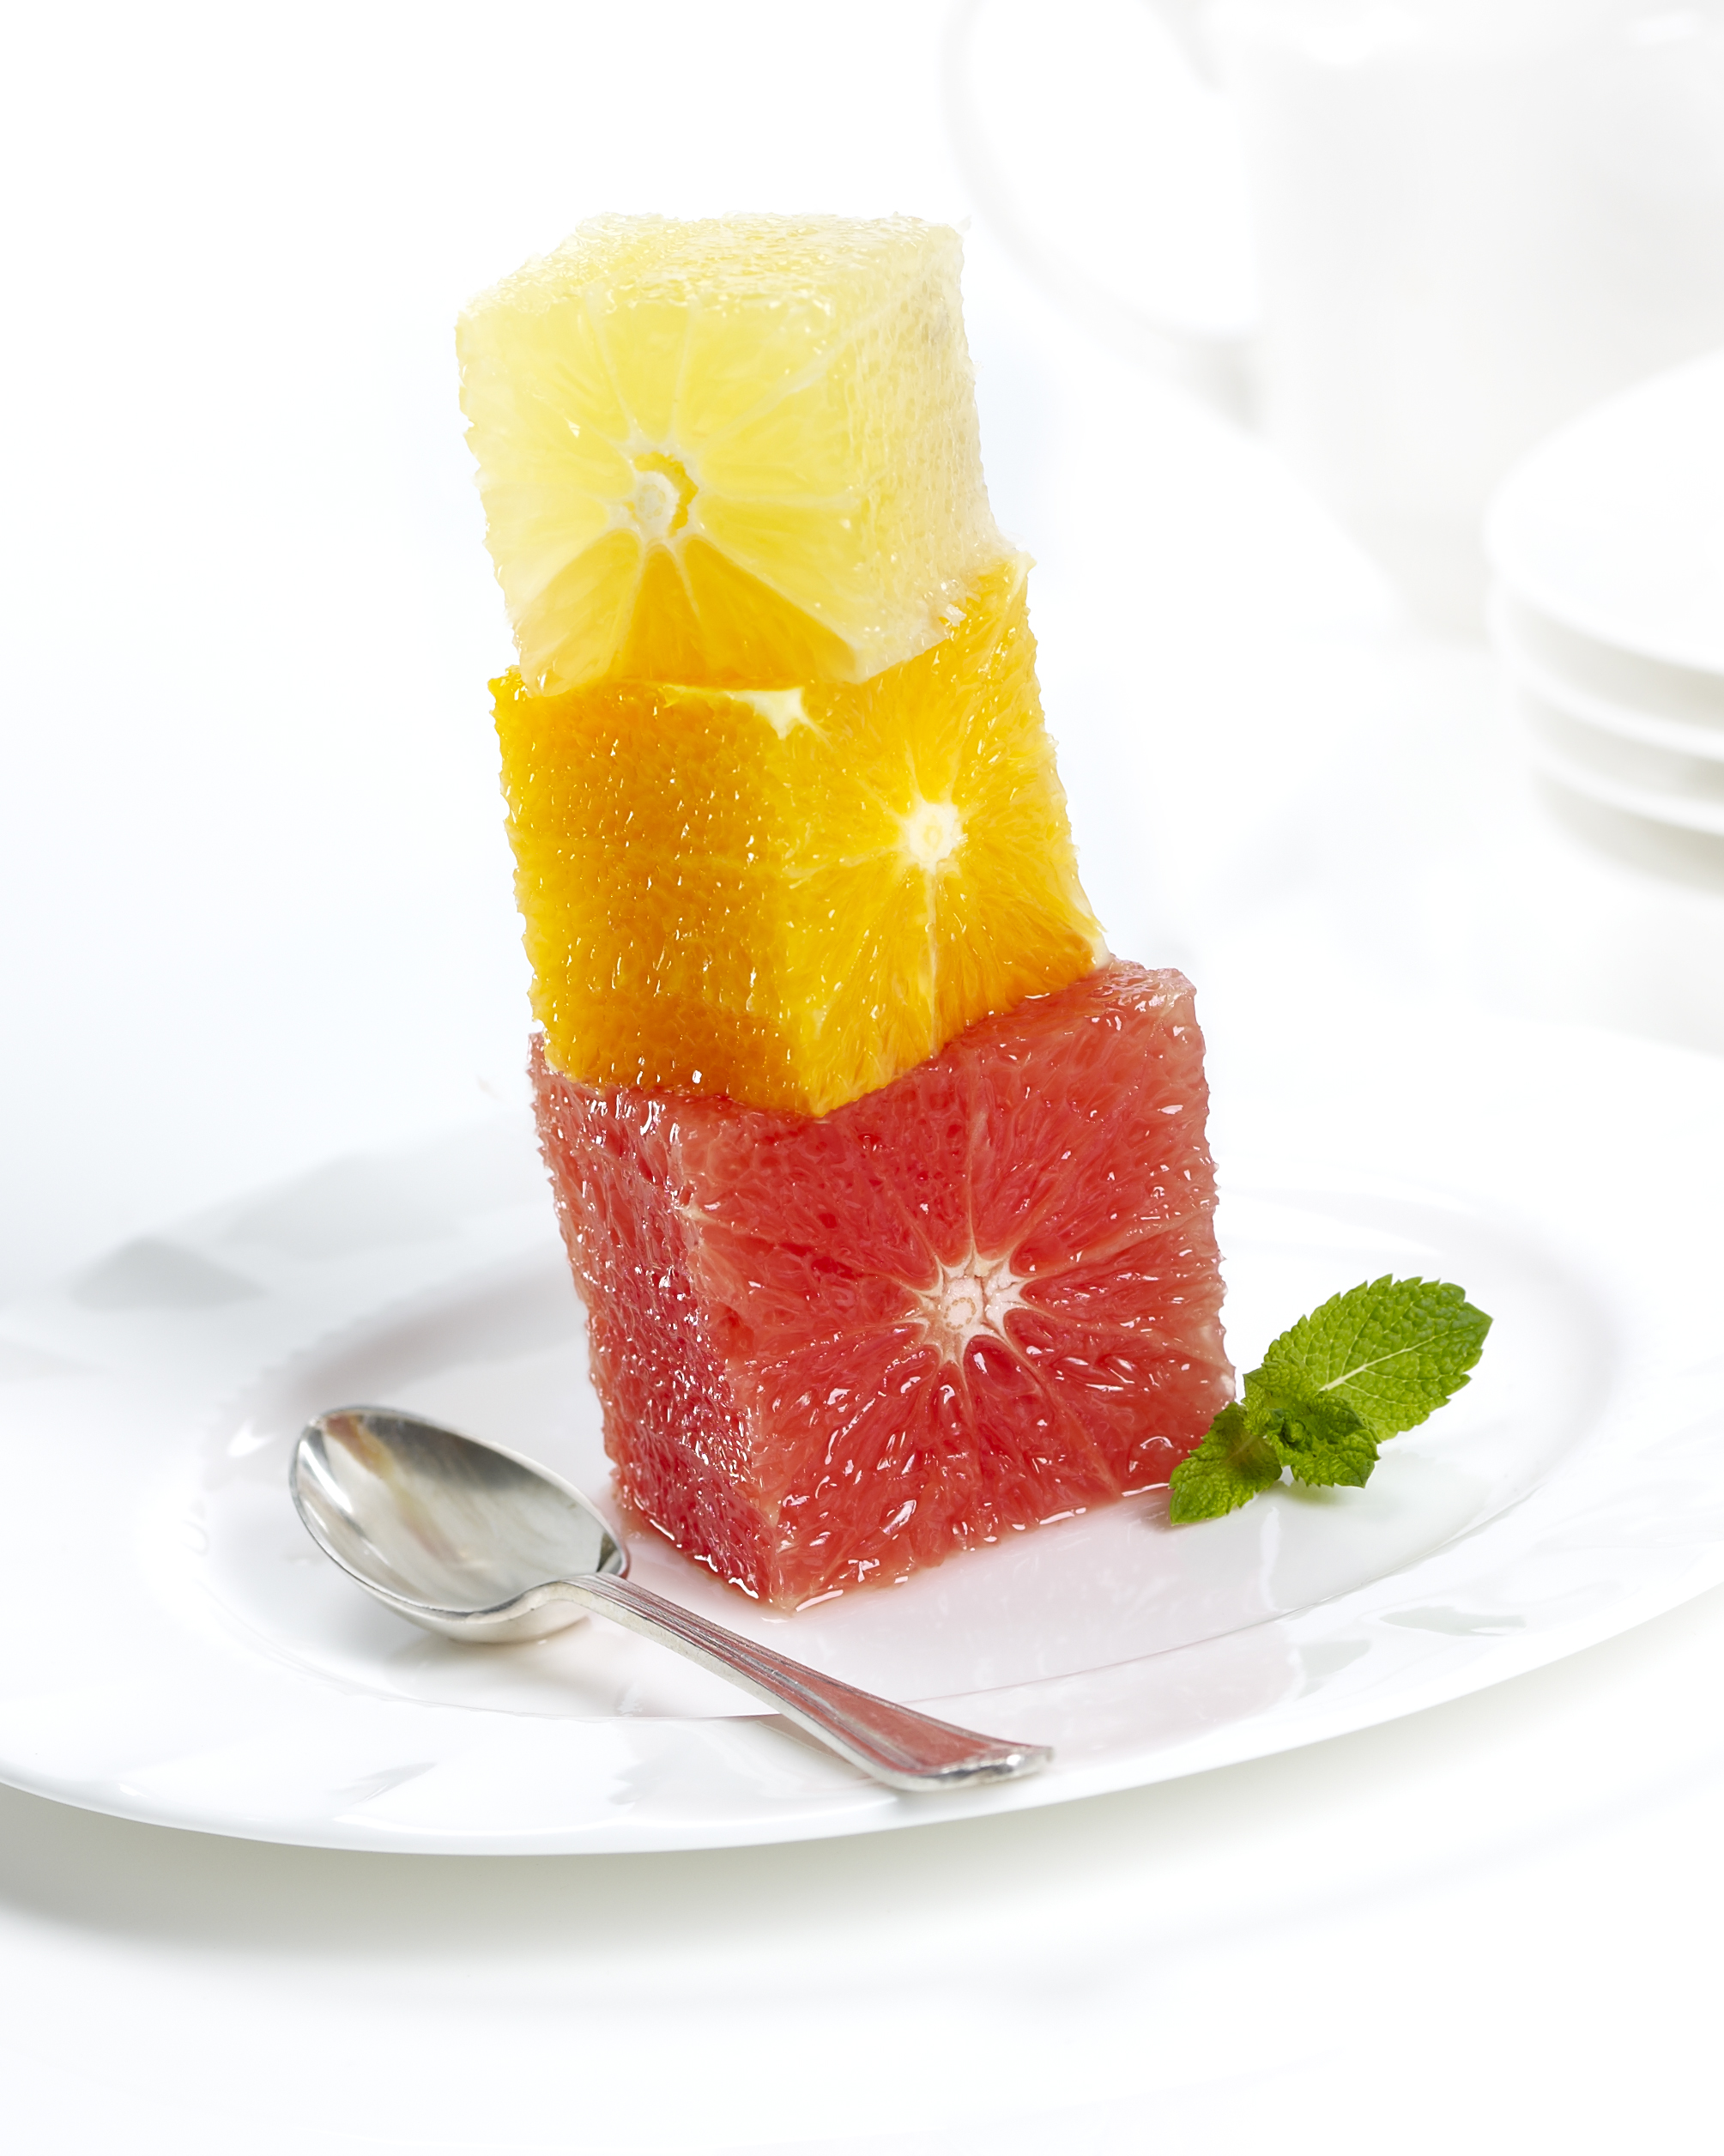 Photography - Cubed Citric Fruit on Plate